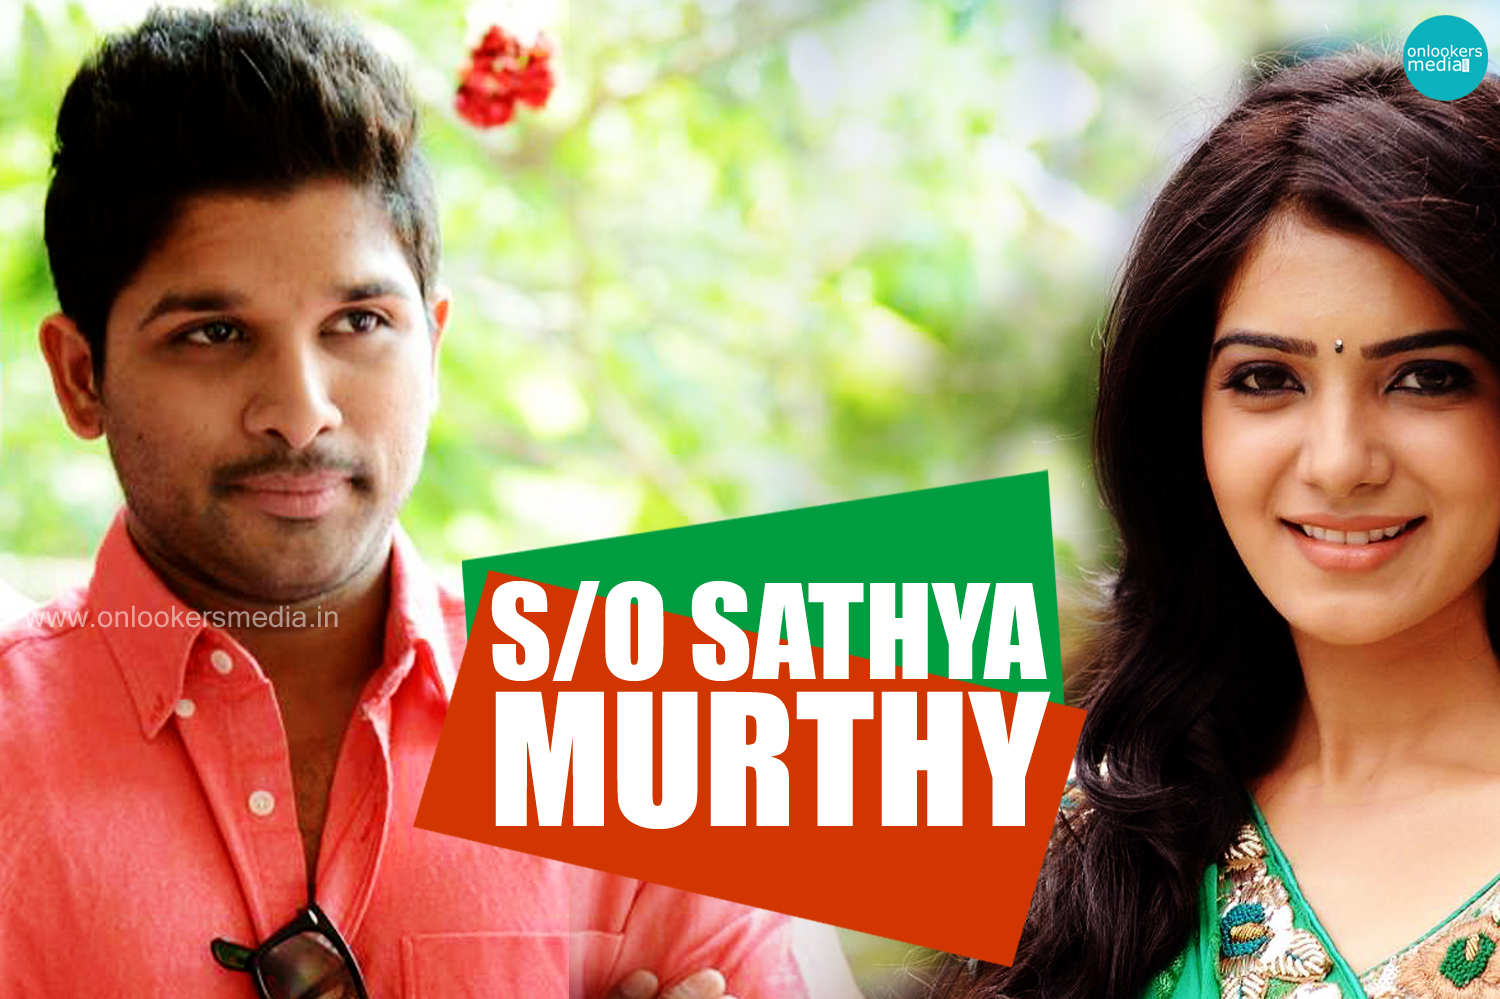 Allu Arjun in son of Sathya Murthy-Stills-Images-Posters-Onlookers Media